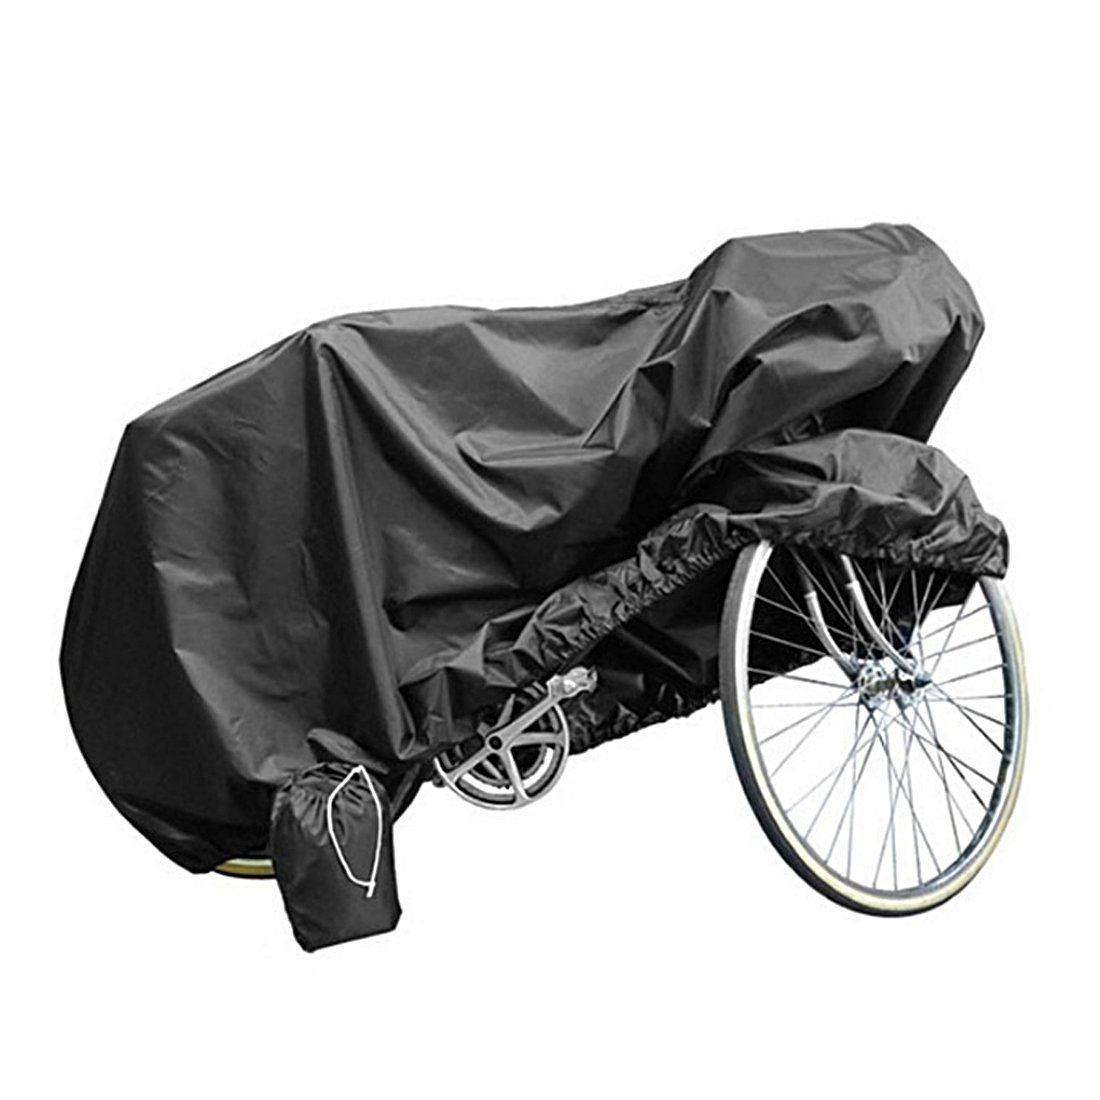 Andux Land Bicycle BikeCover 210T Polyester Heavy Duty Waterproof Wind Proof Rain Sun UV Dust for Mountain, Road, Racing Cruiser, Electric & Hybrid Bikes, Adjustable Outdoor Storage BlackZXCZ-01 by Andux (Image #1)